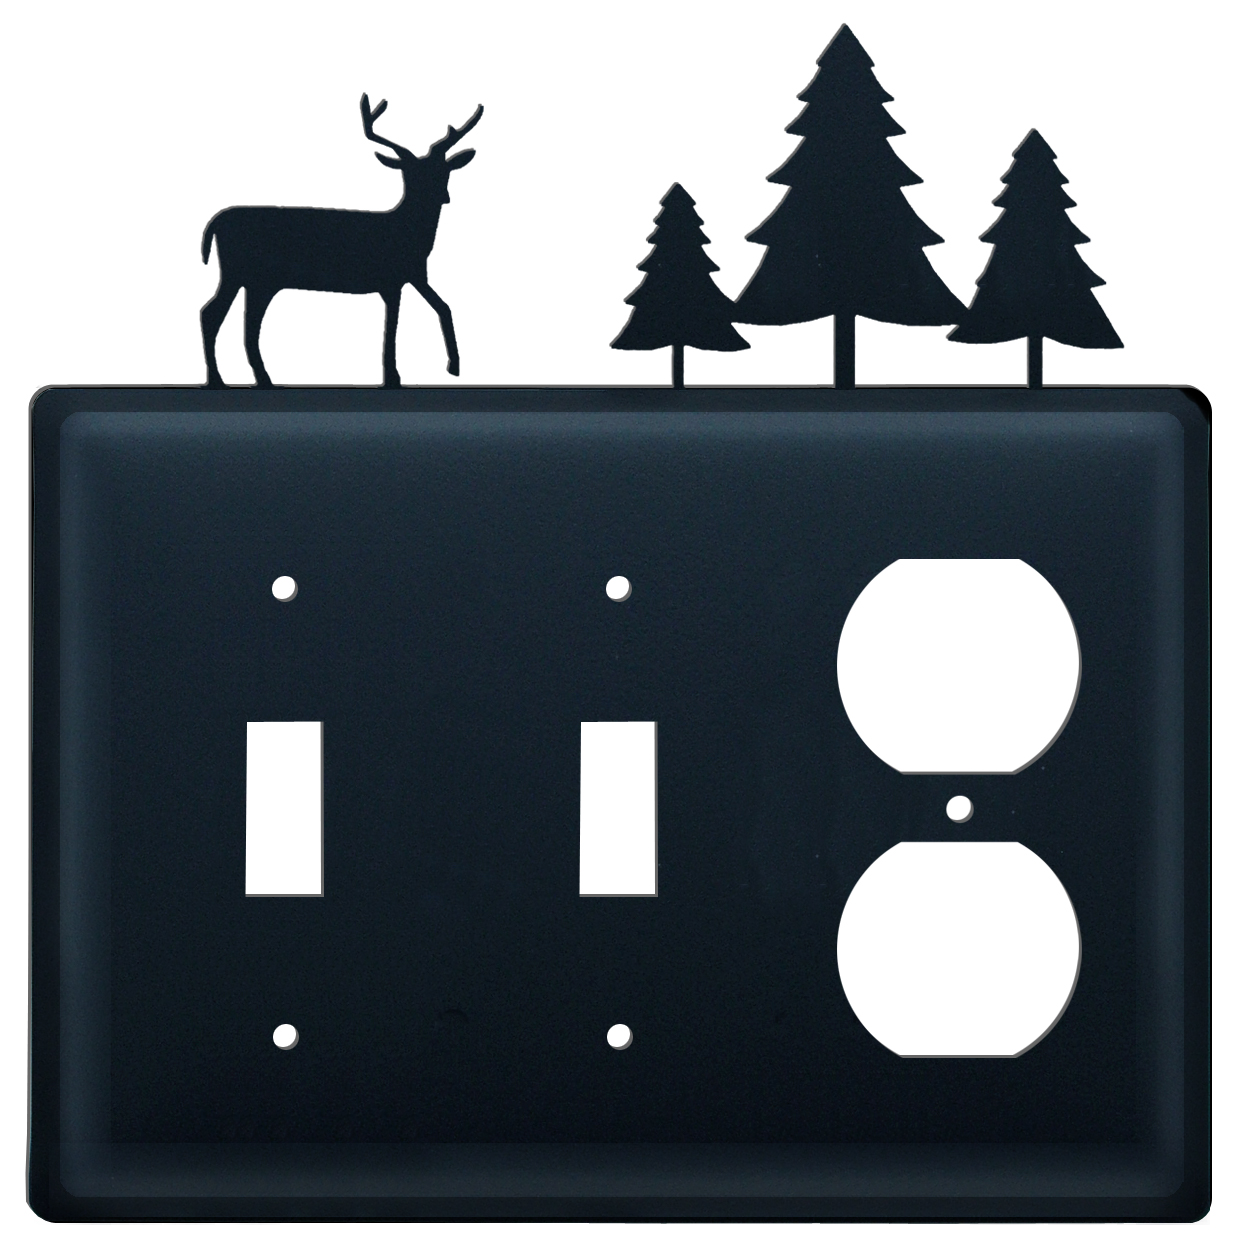 Deer & Tree - Double Switch and Single Outlet Cover